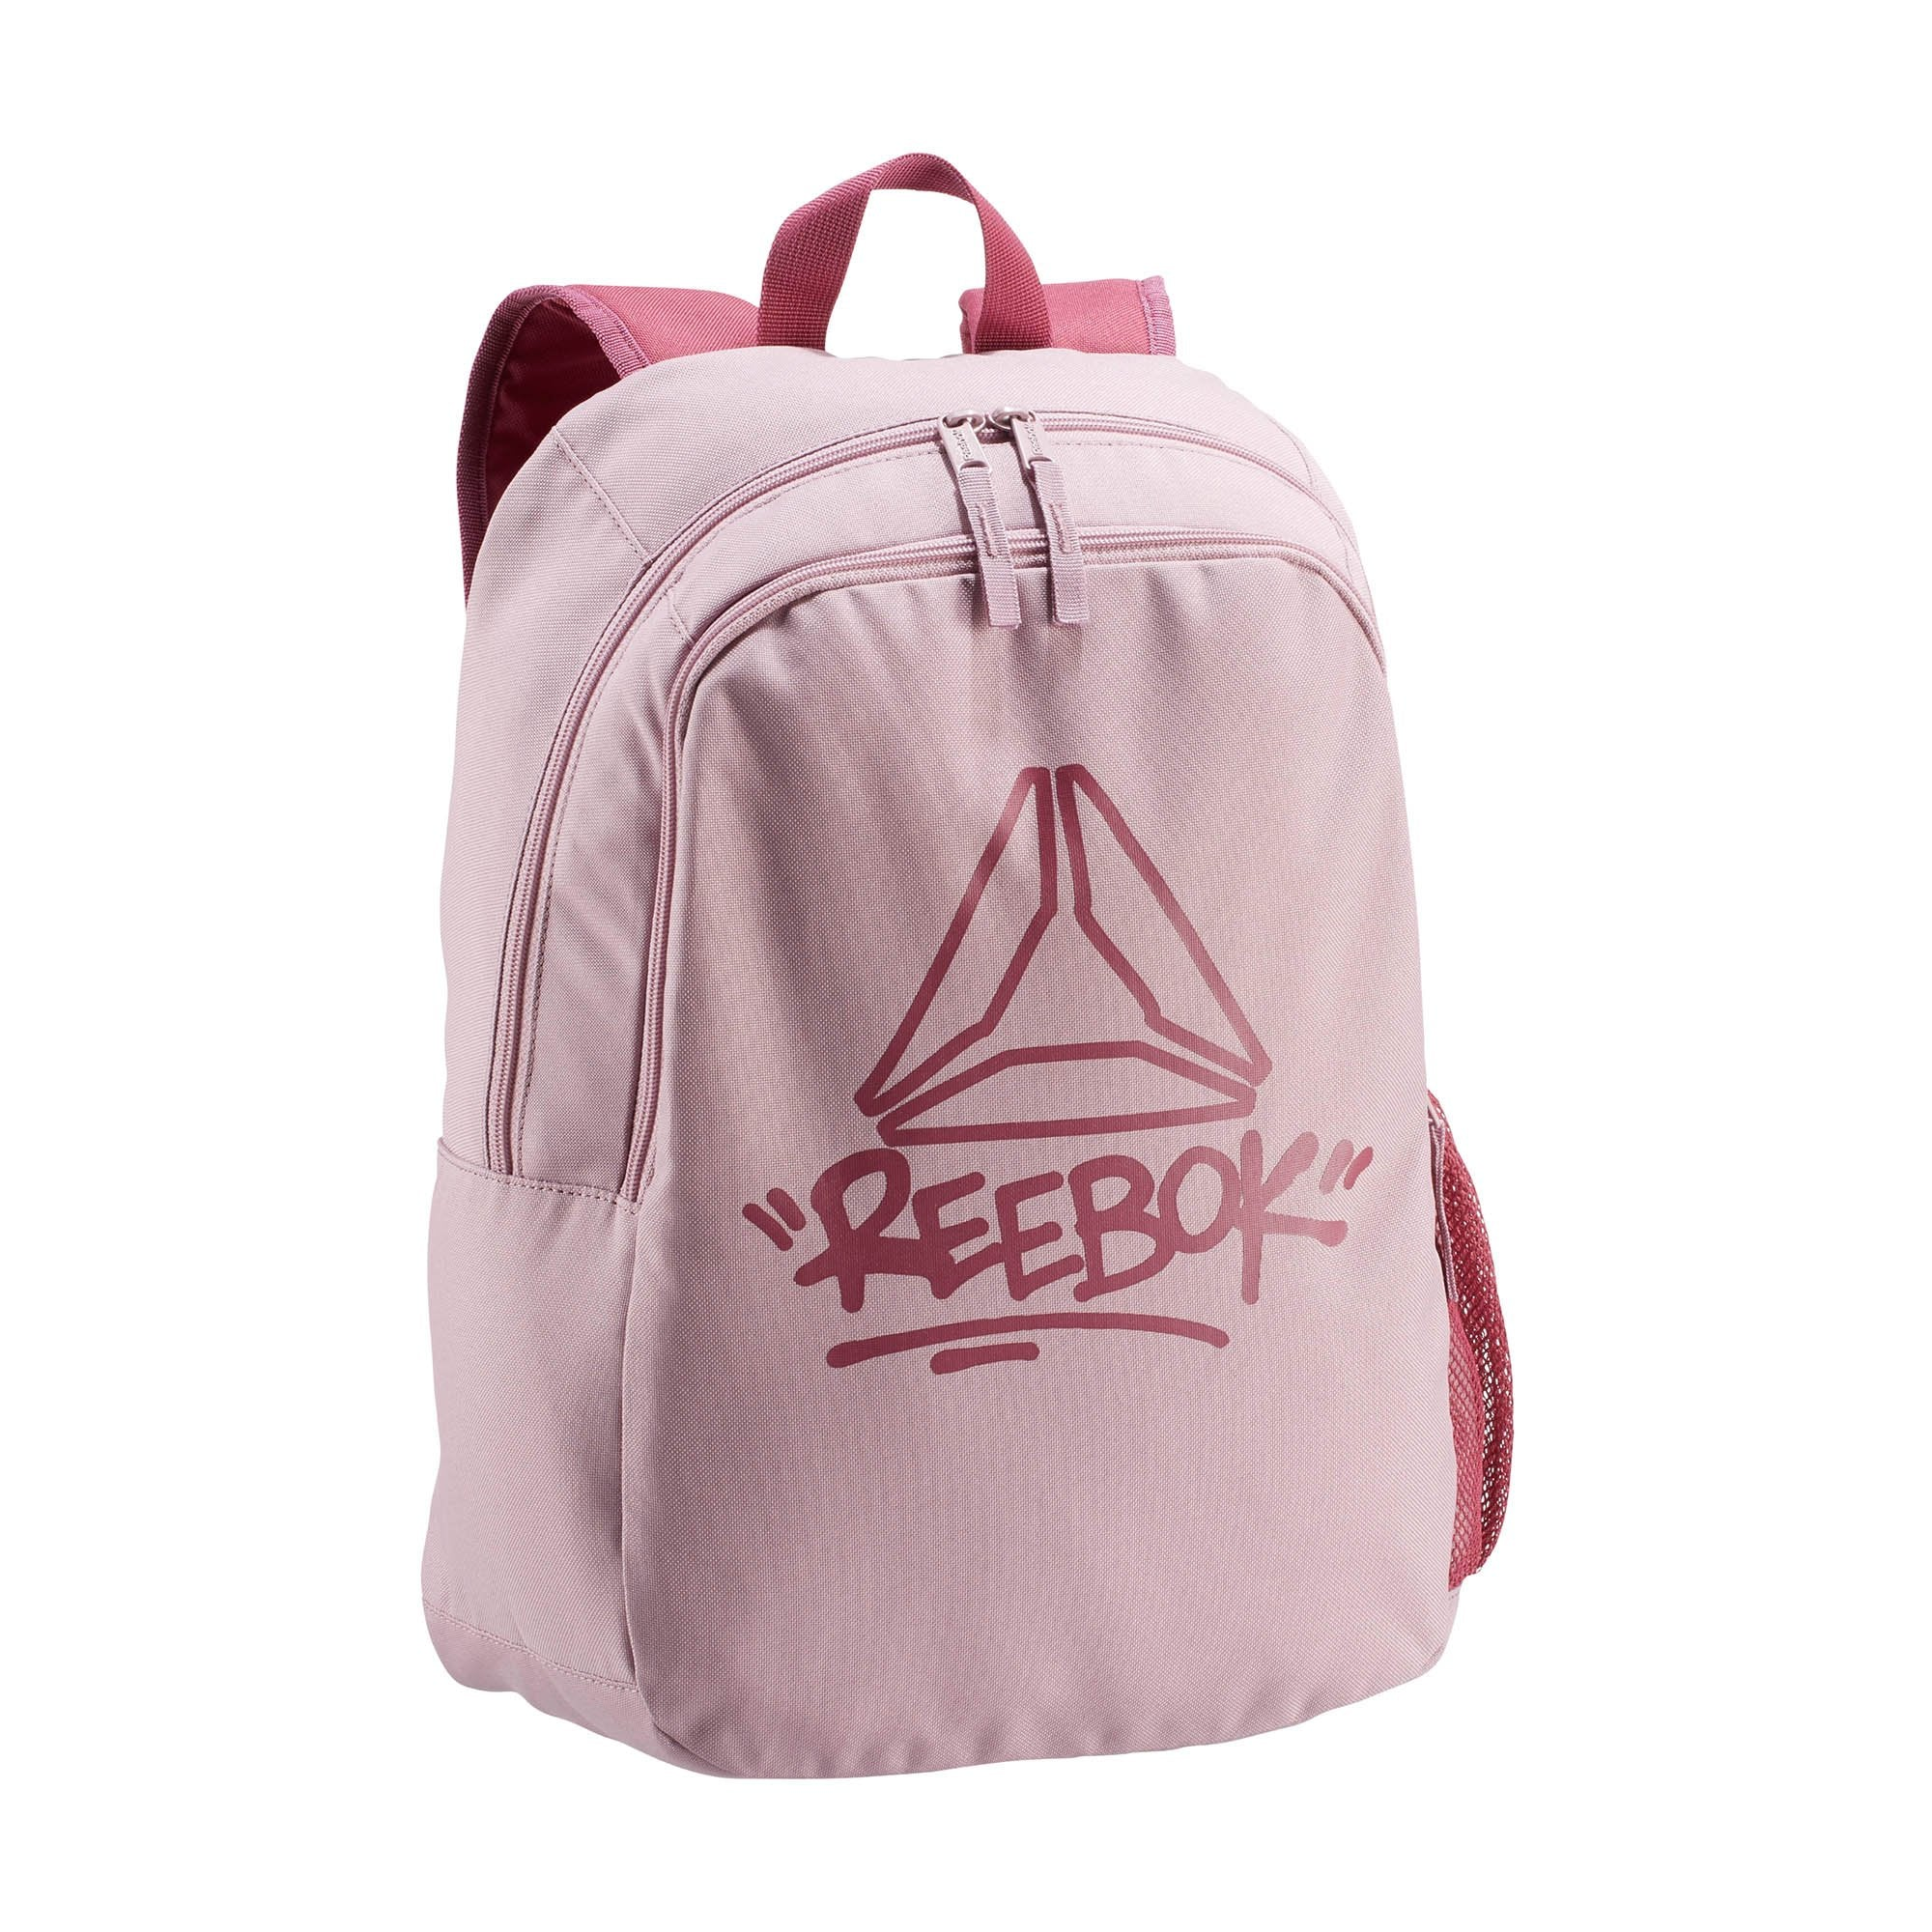 Buy Reebok Kids Foundation Backpack